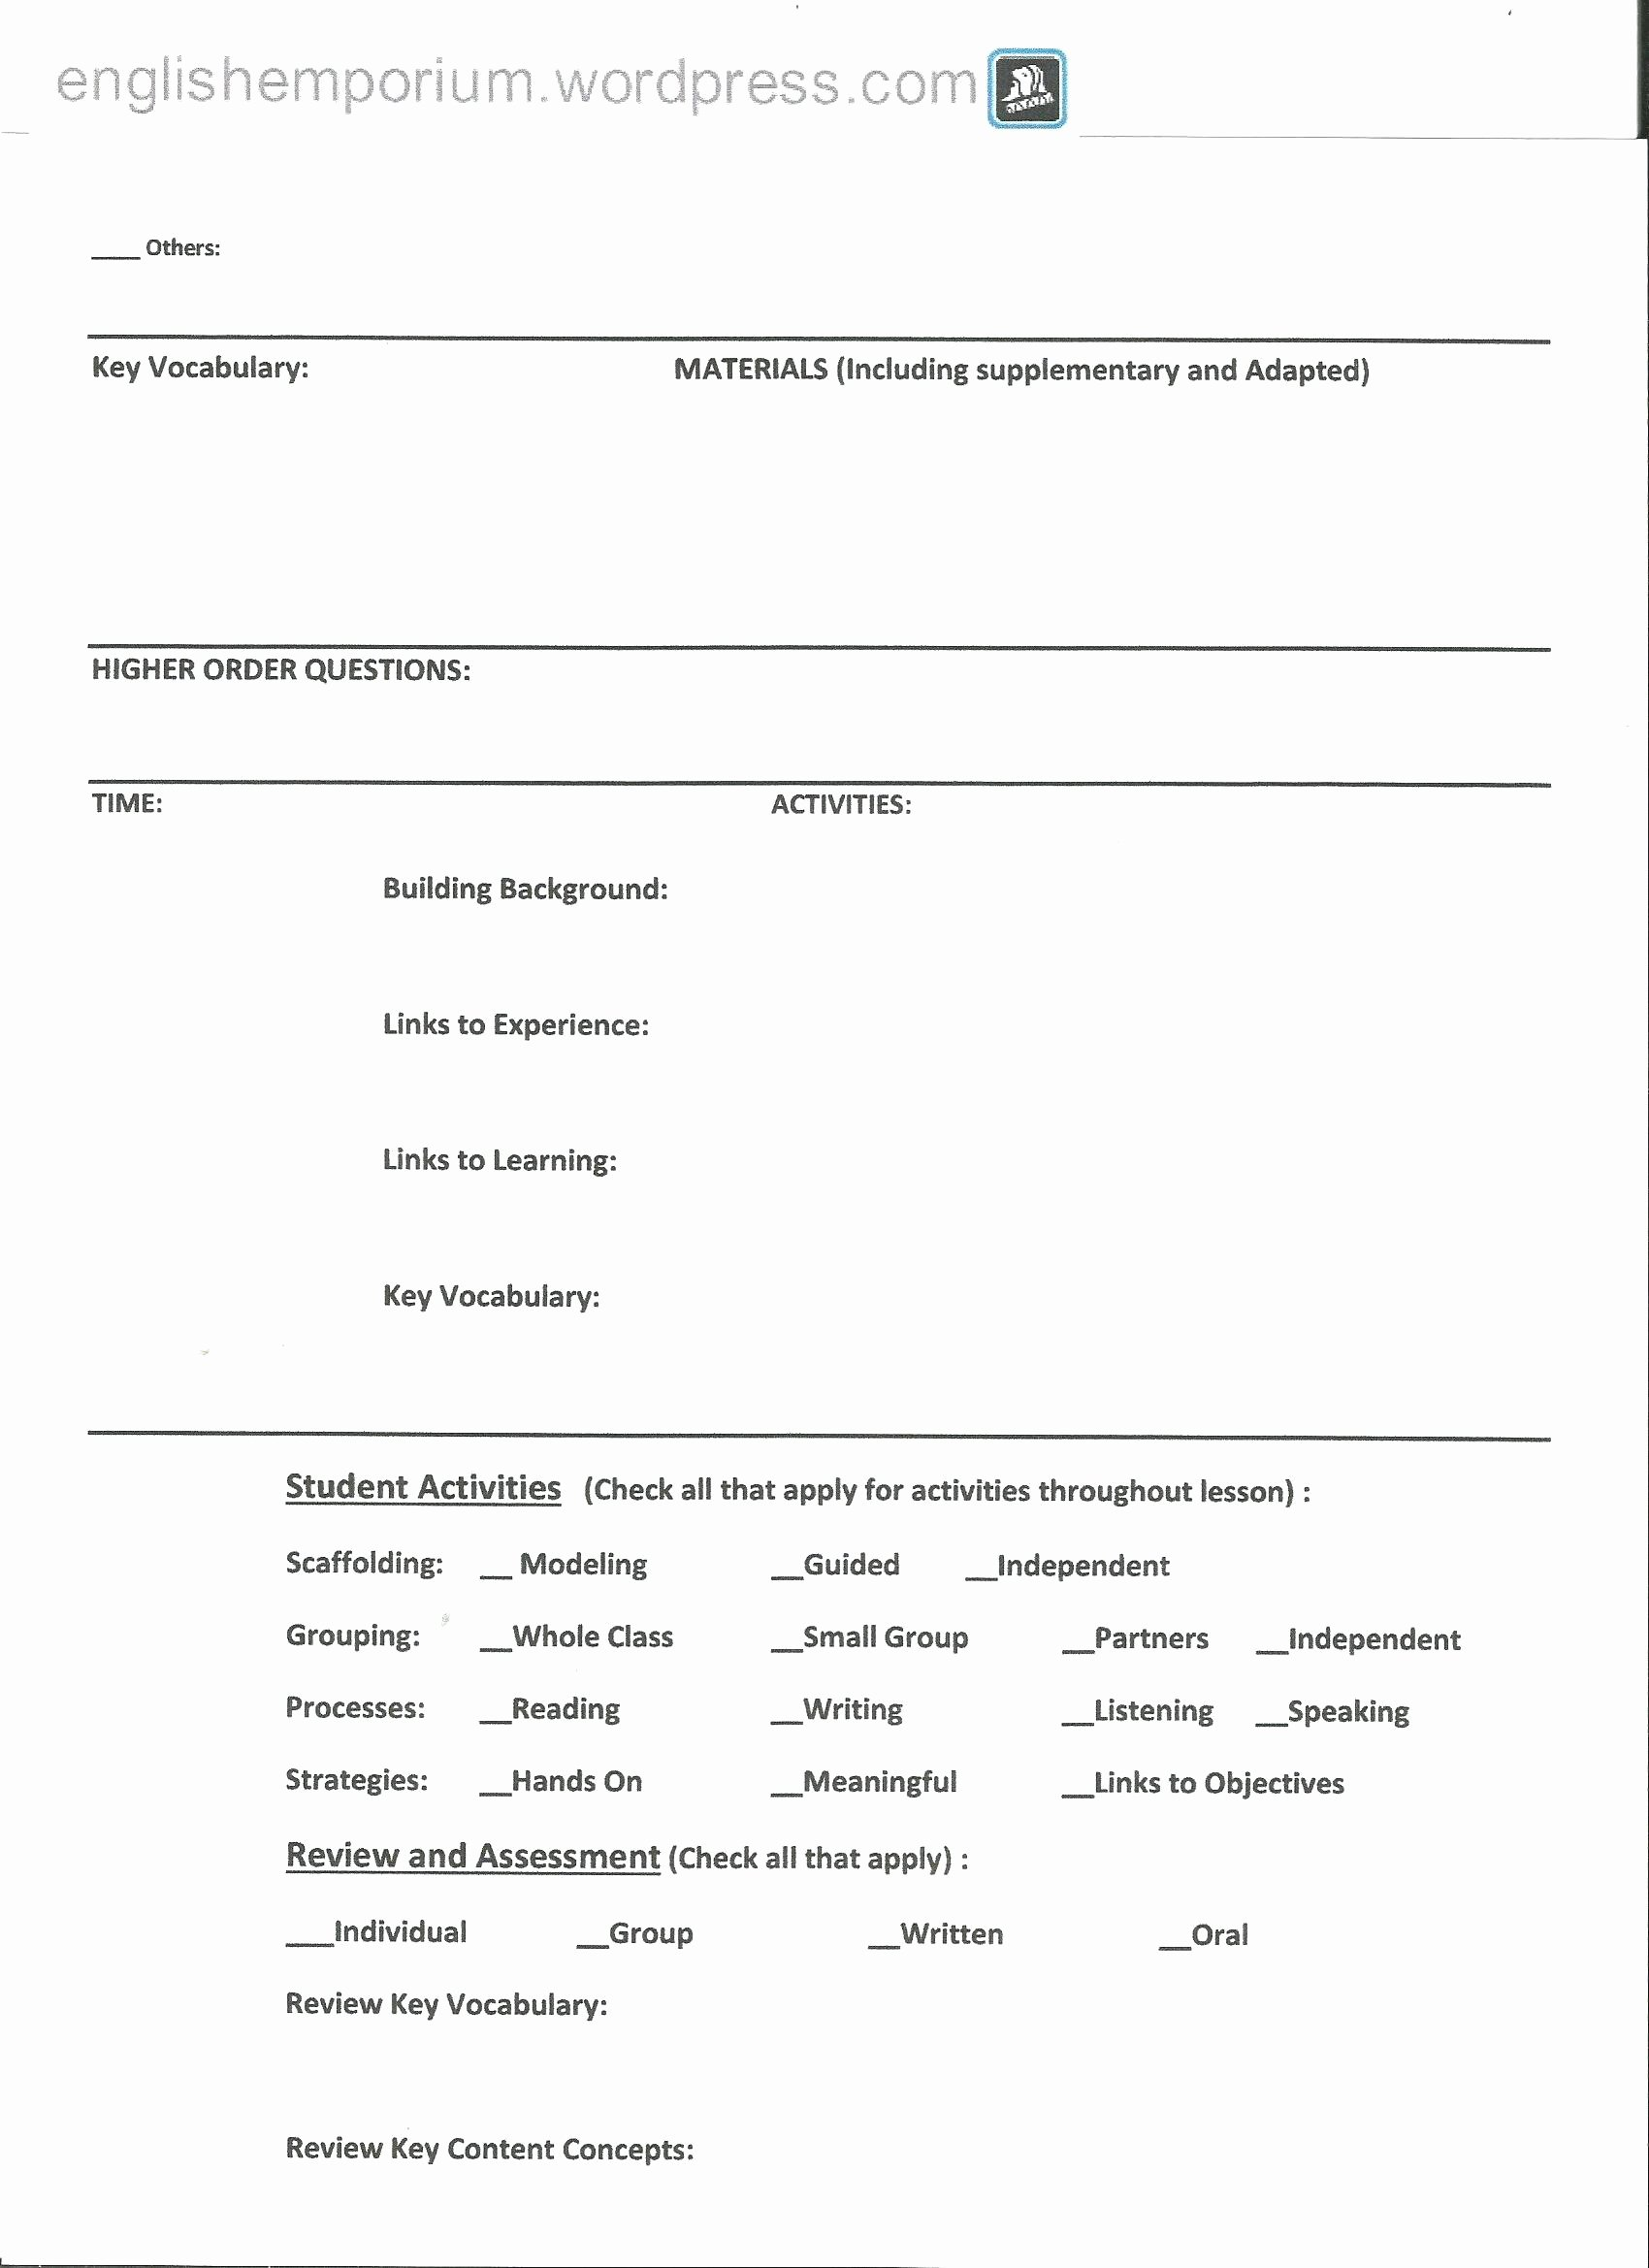 Siop Lesson Plan Template 3 Inspirational Siop Lesson Plan Example 2nd Grade for First